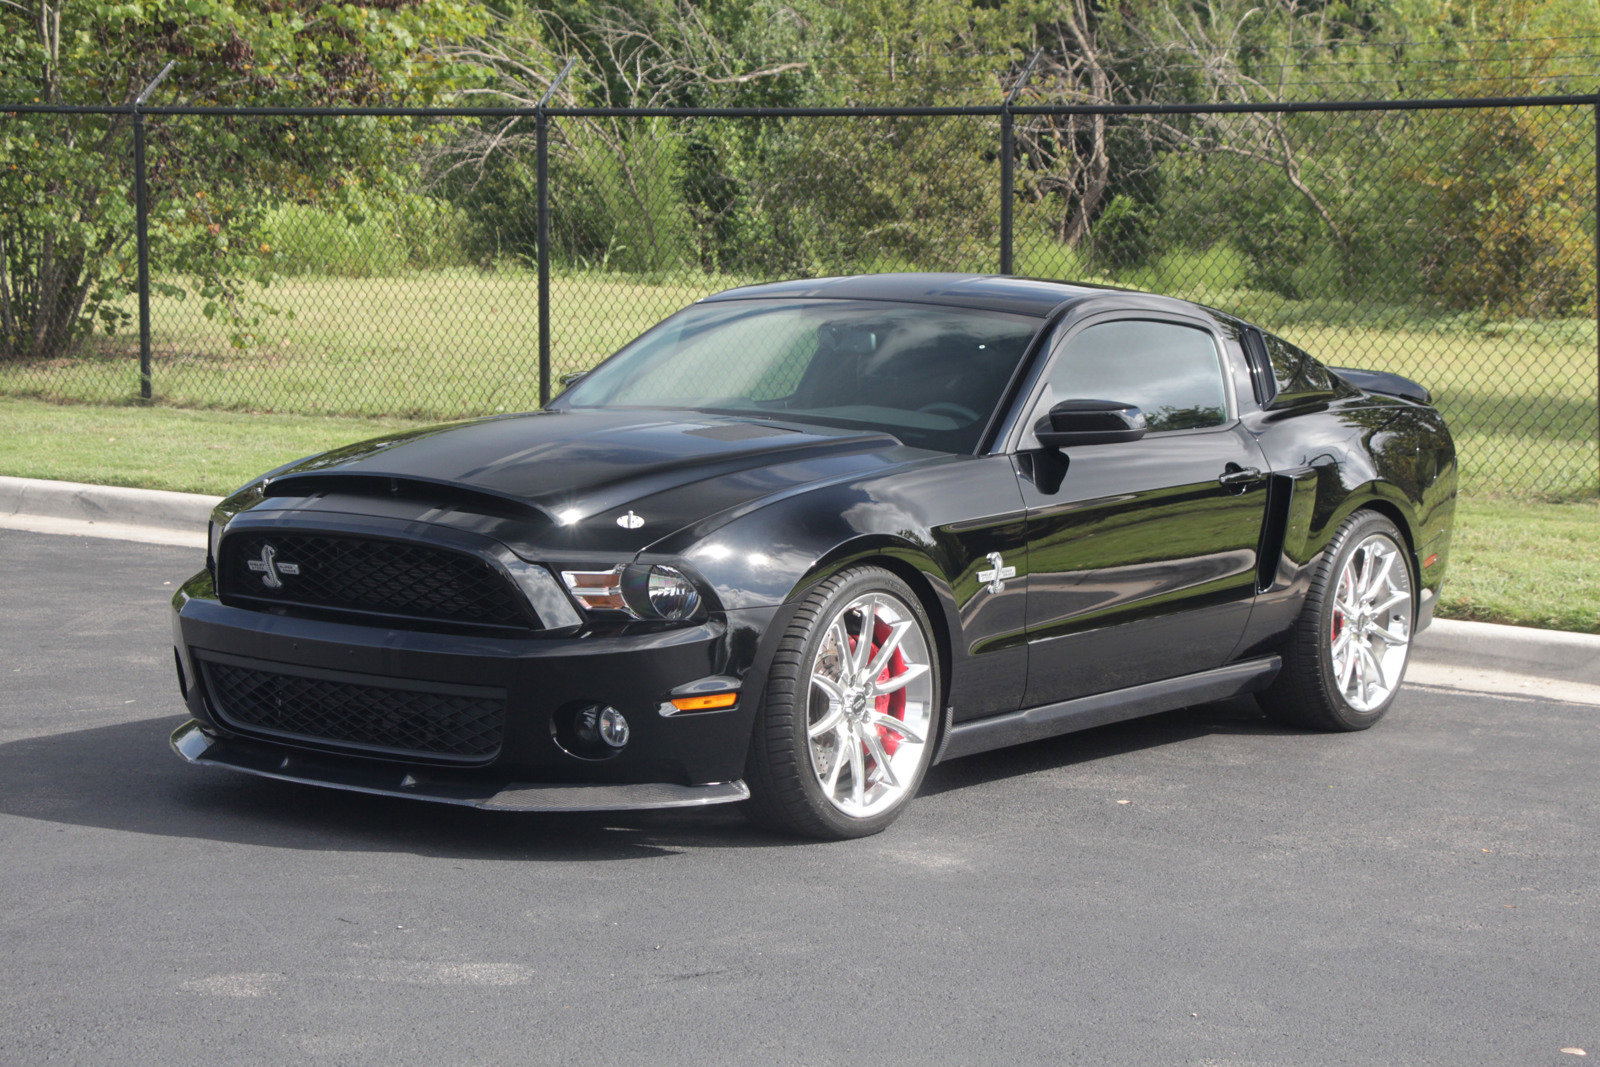 2010 Ford Shelby GT500 Super Snake